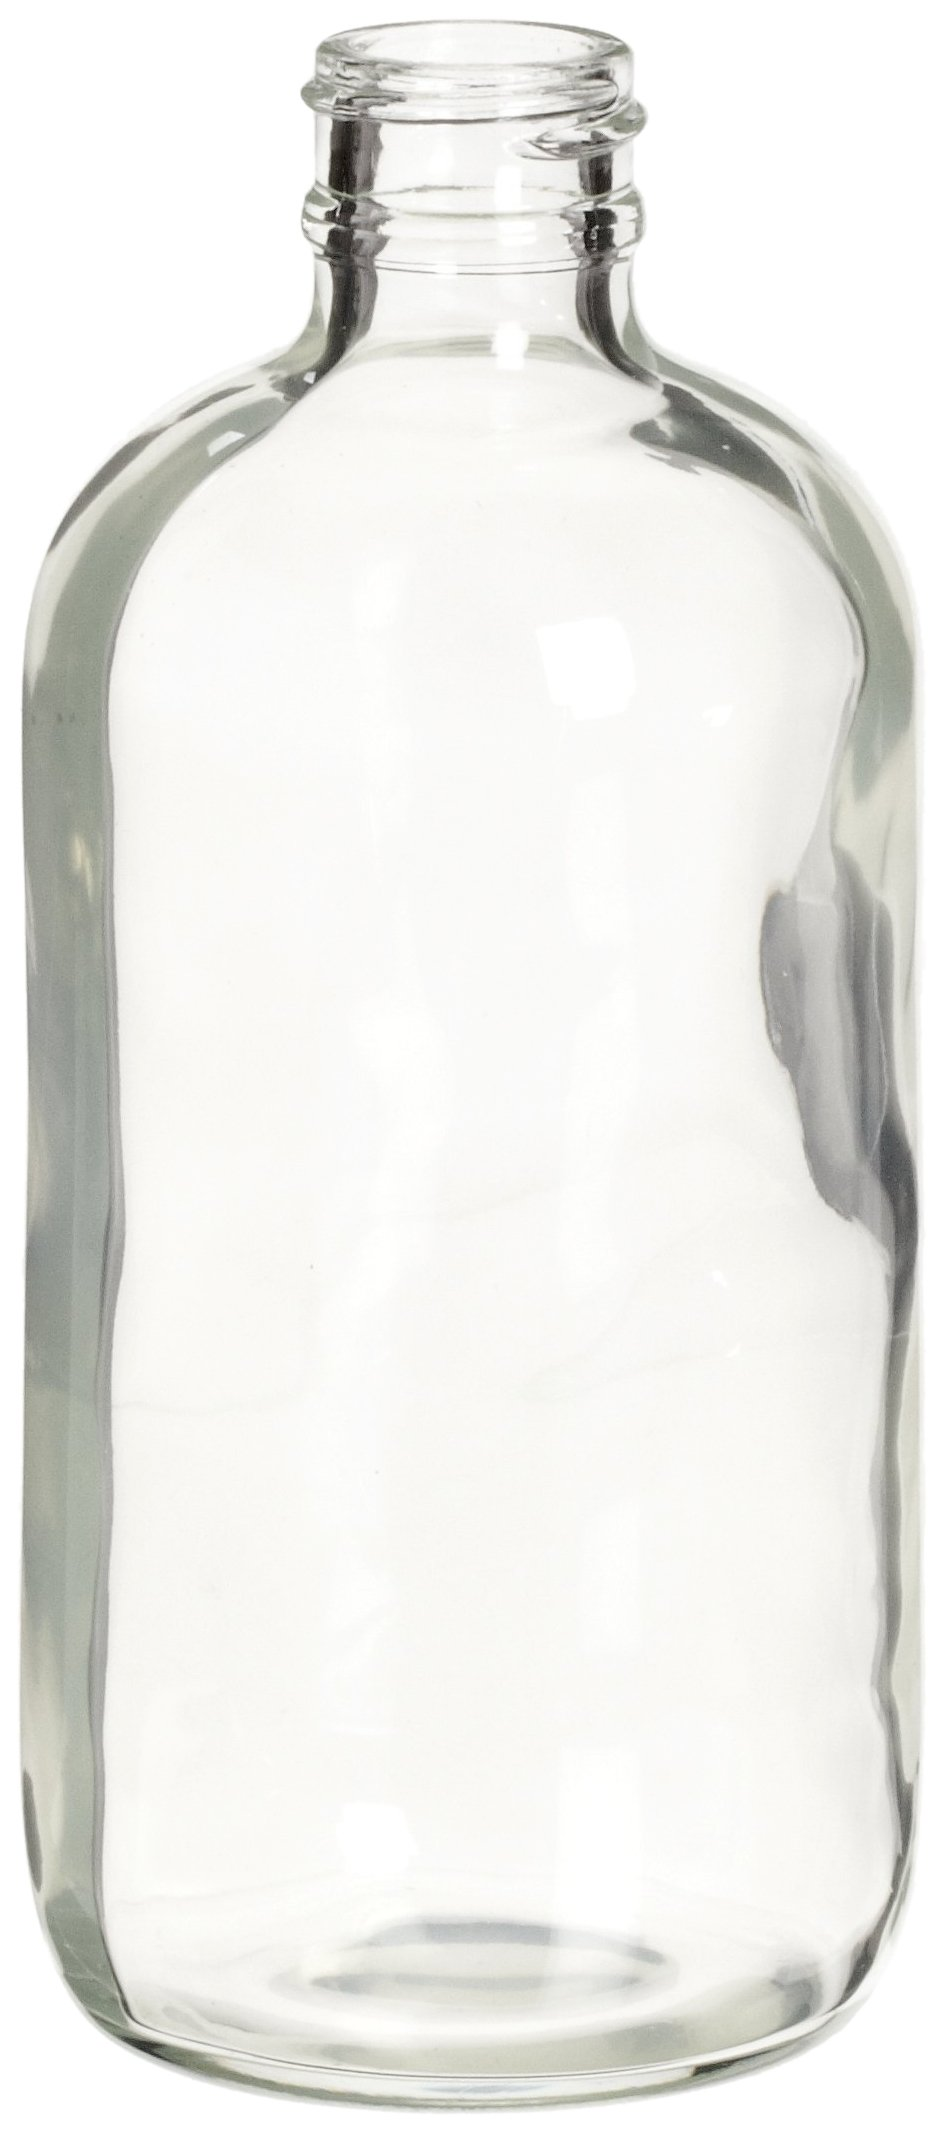 Wheaton 220724 Clear Glass Boston Round Safety Coated Bottle, 8oz, Without 24-400 Screw Cap, 62mm x 140mm (Case of 48)